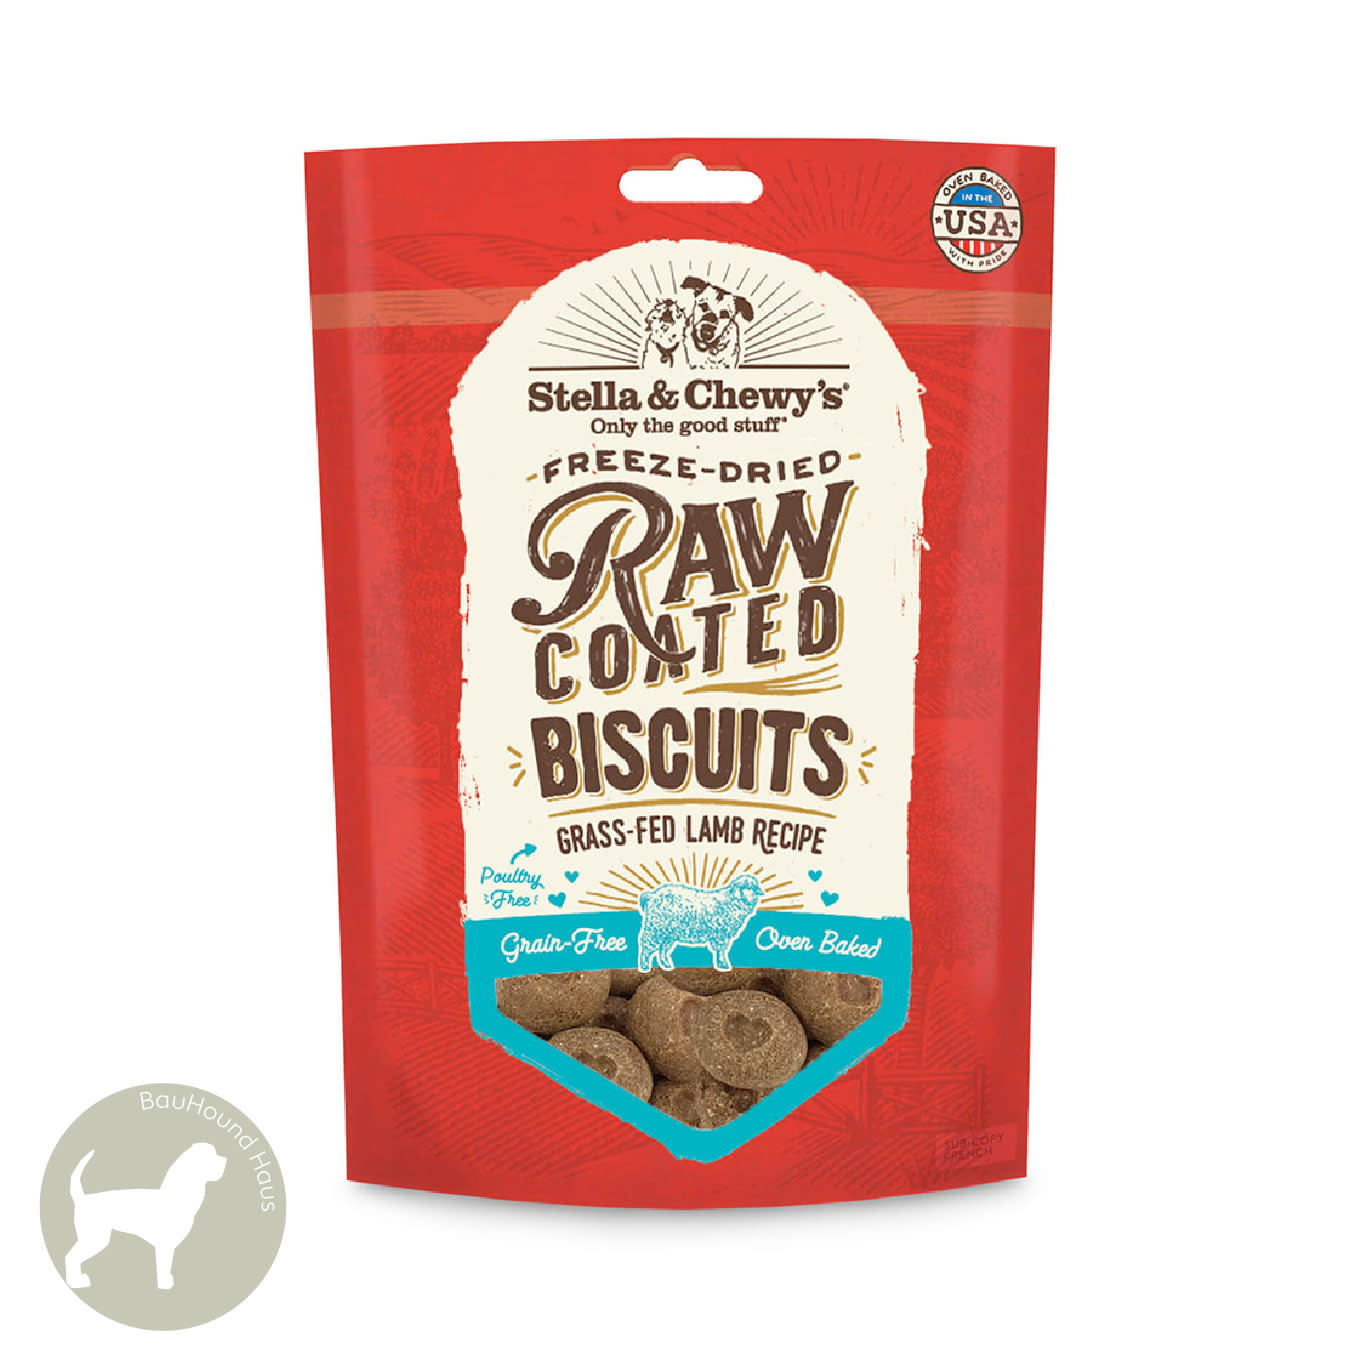 Stella & Chewy's Stella & Chewy's Raw Coated Biscuits Grass-Fed Lamb, 9oz